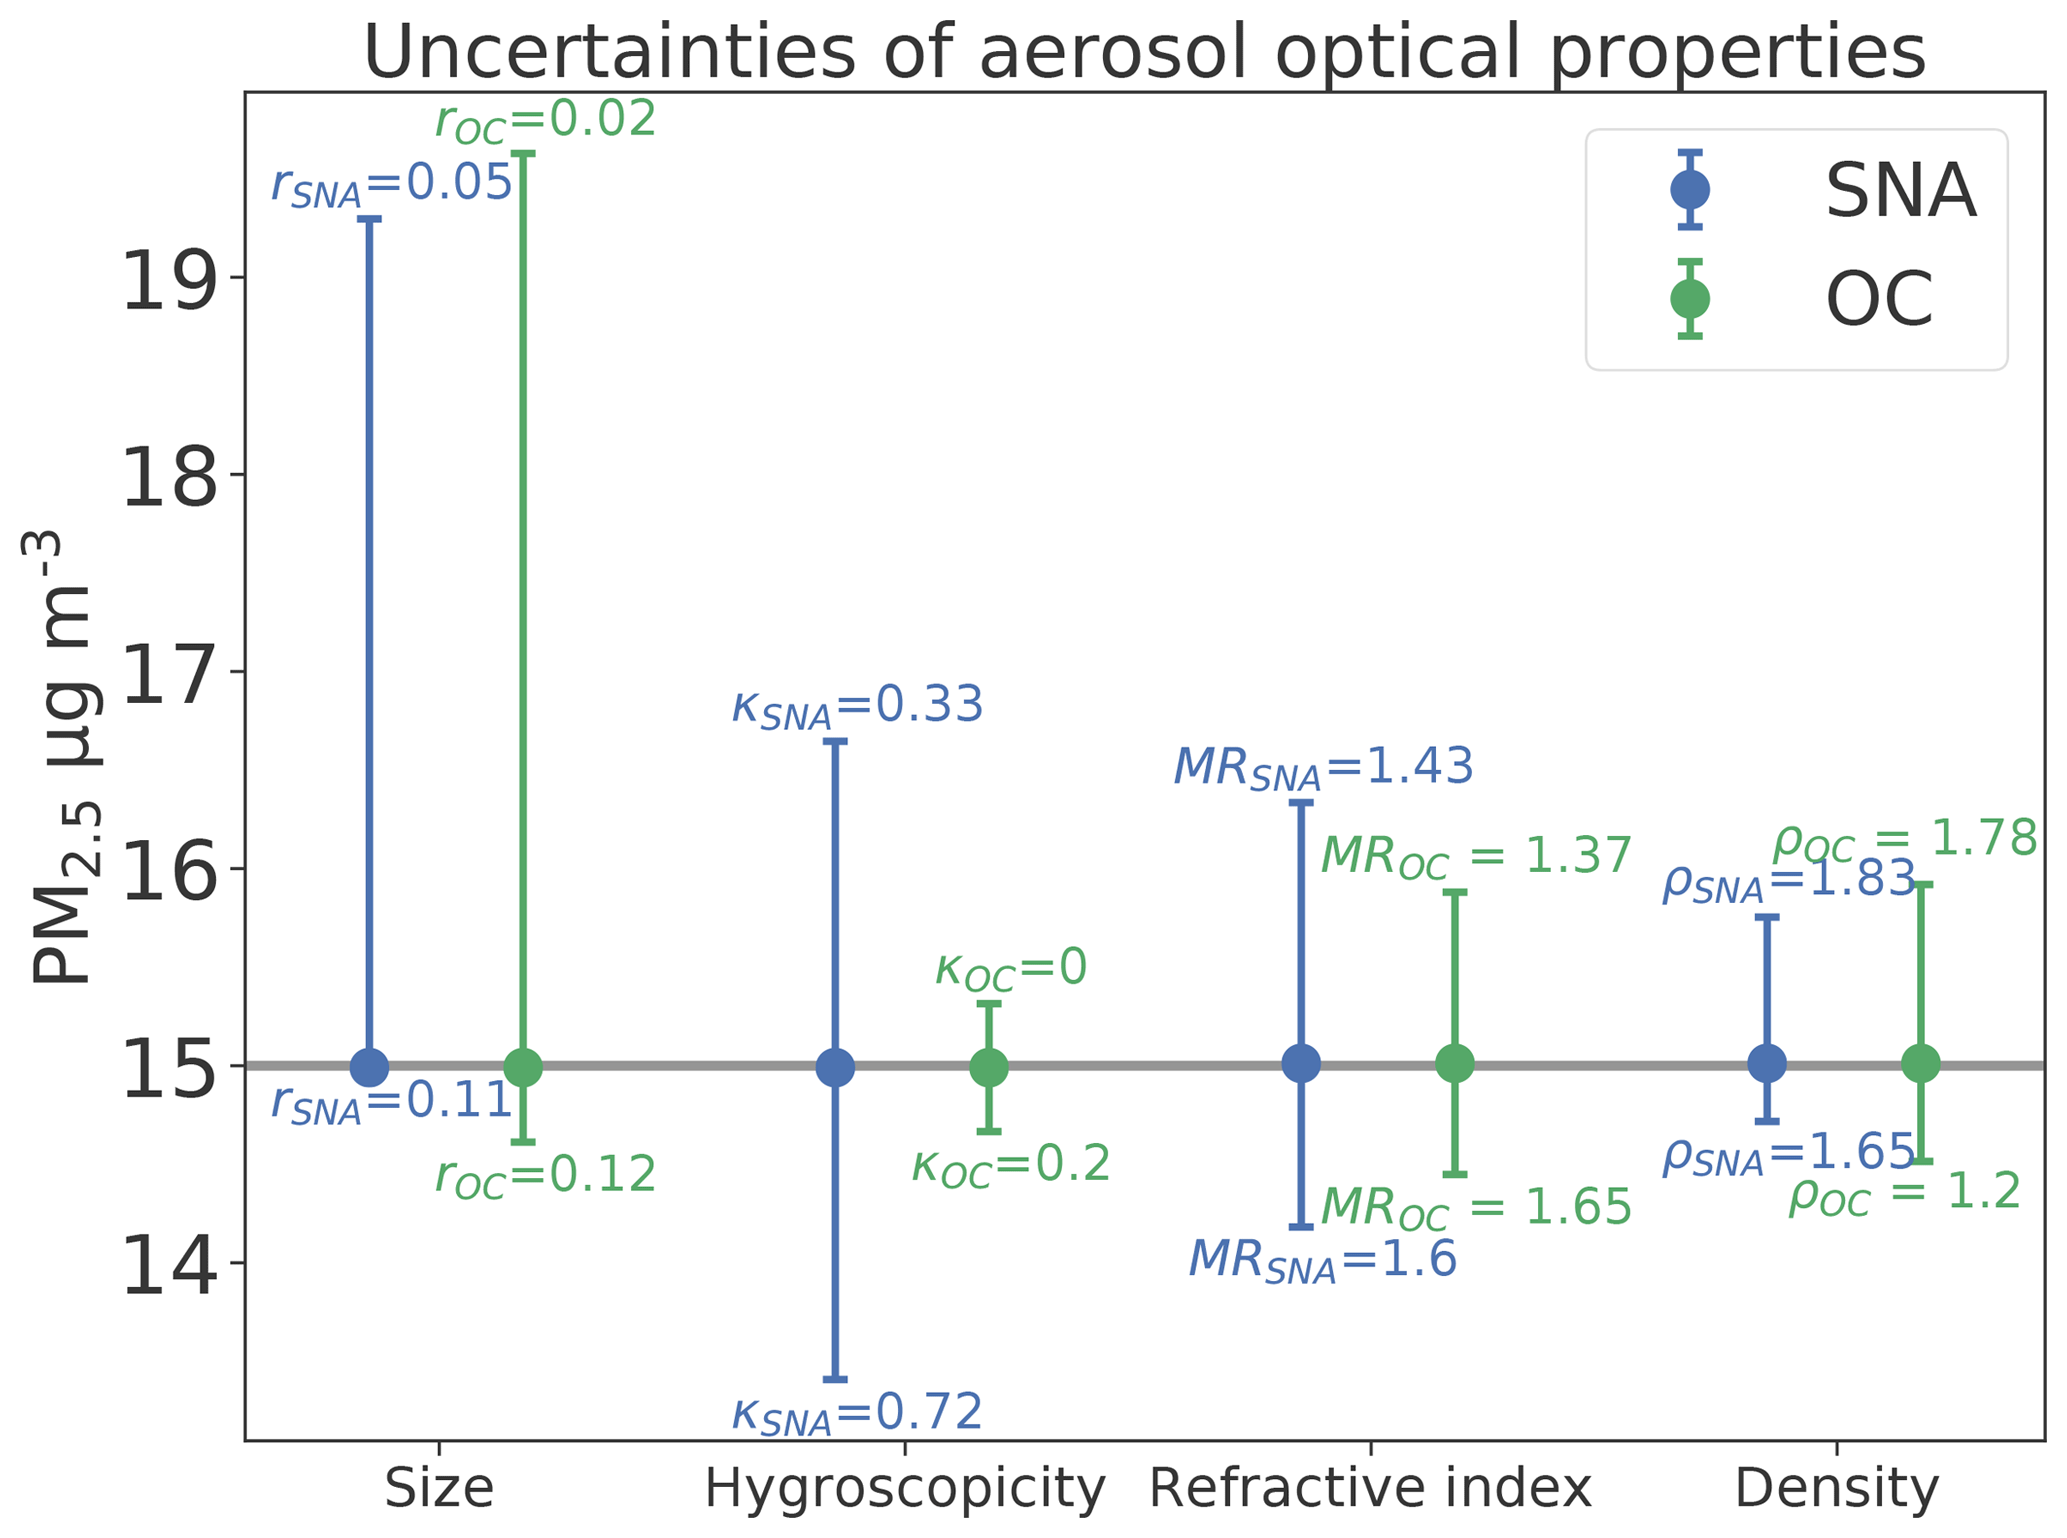 ACP - Assessing uncertainties of a geophysical approach to estimate